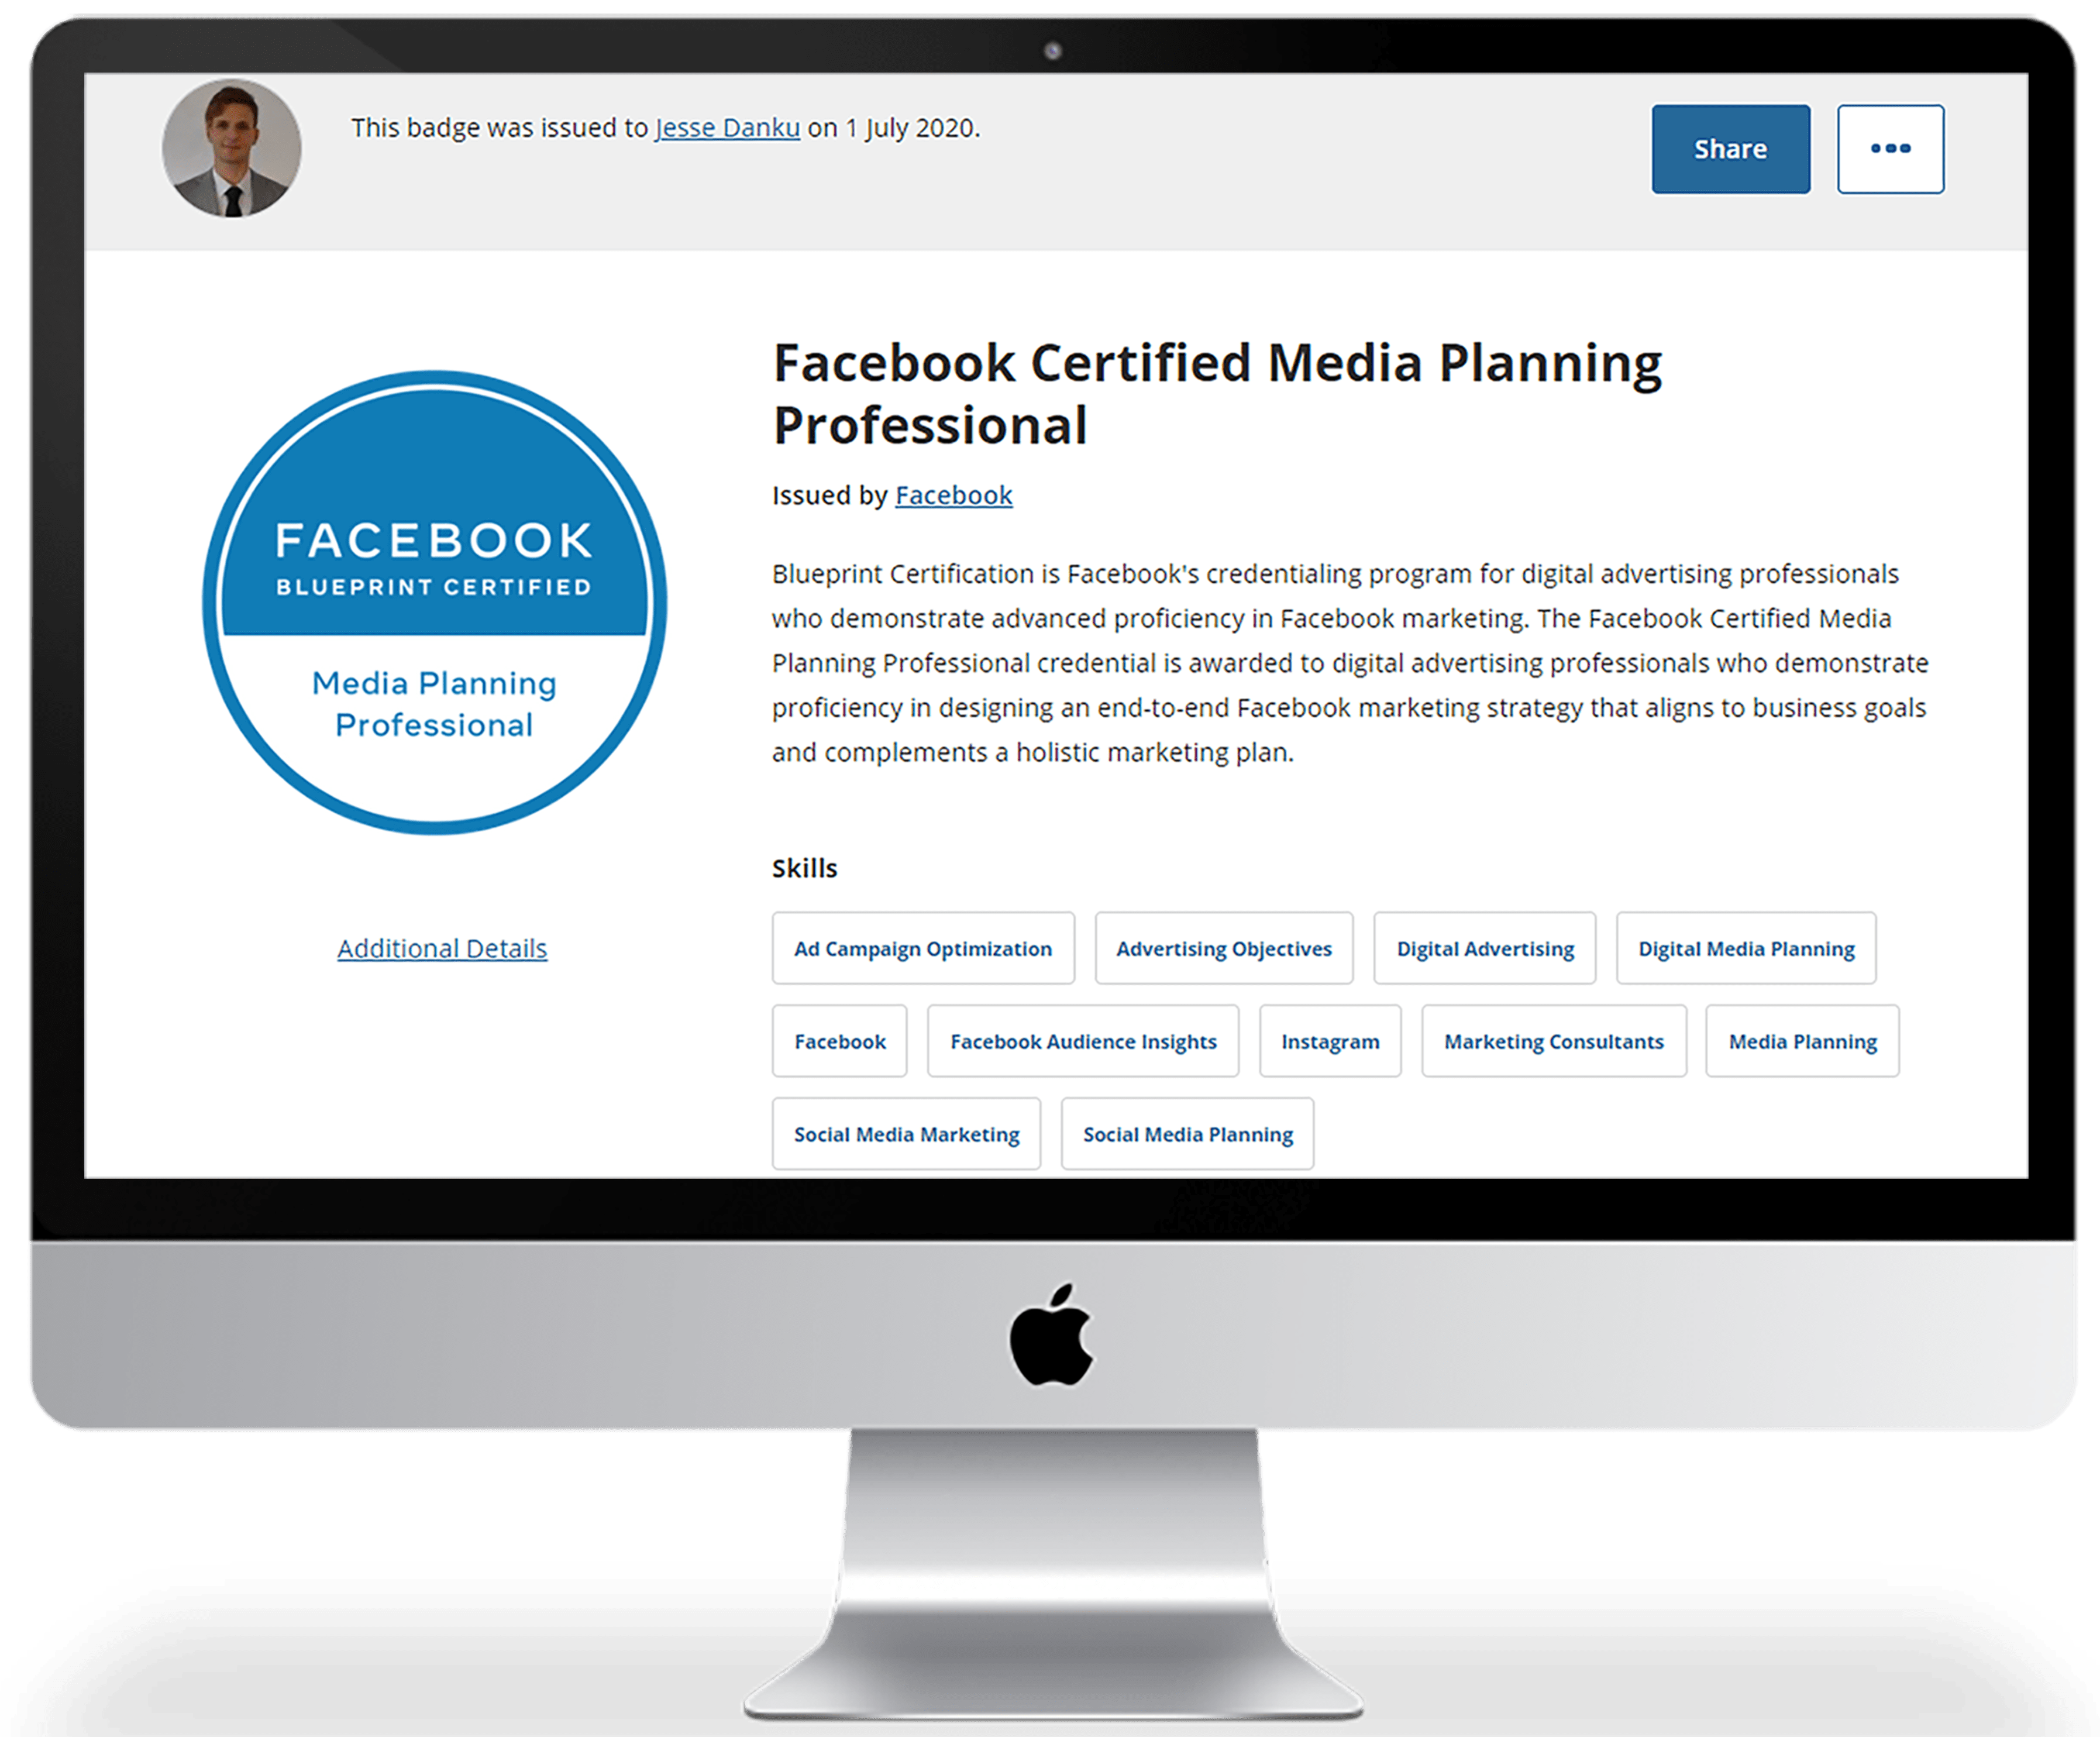 FB Certified Media Planning Professional certificate issued by Facebook